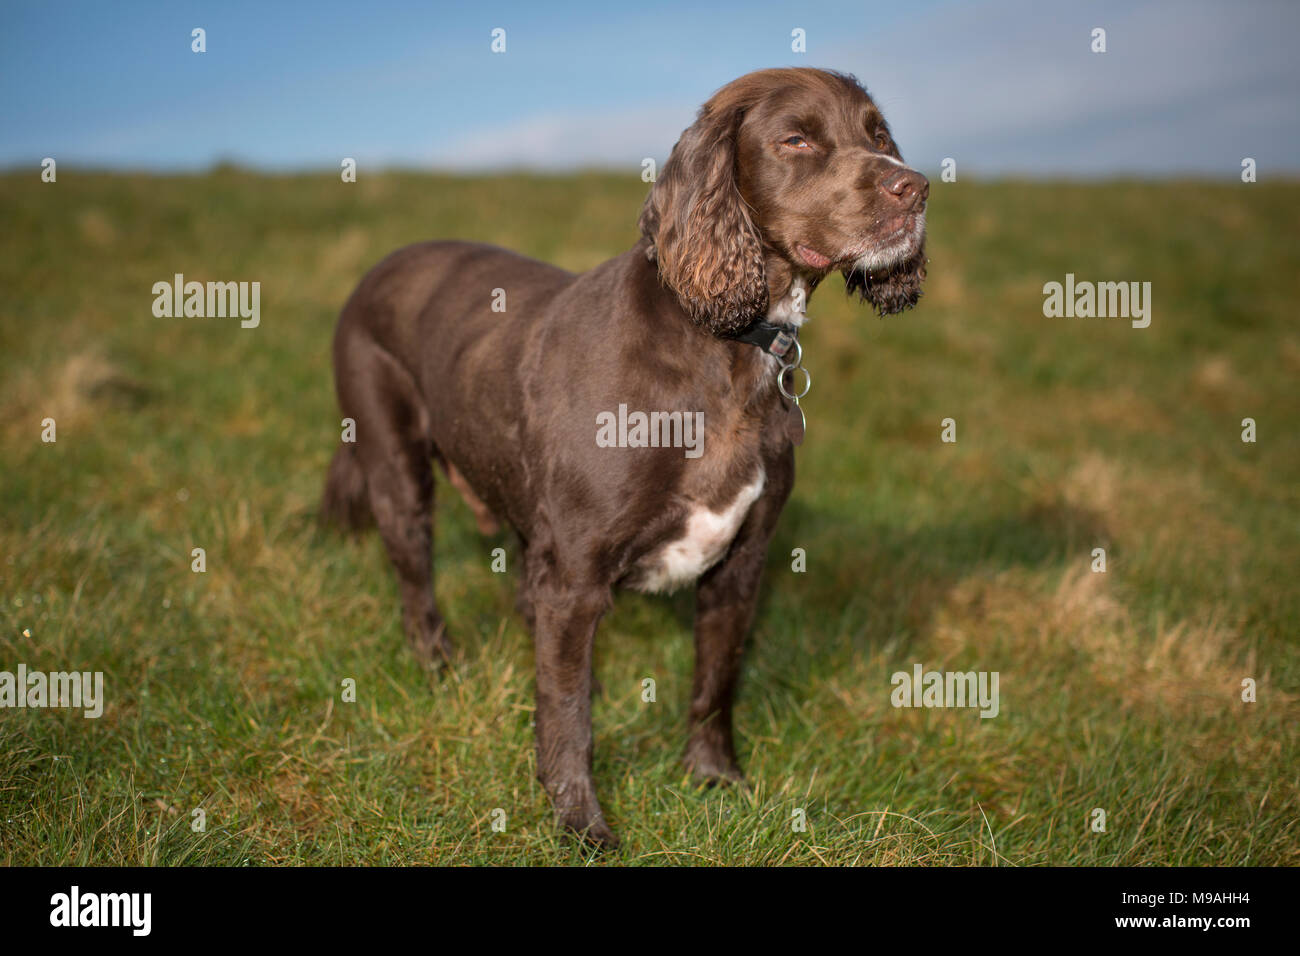 A dog portrait of a pedigree chocolate brown working cocker spaniel standing in a green field with blue sky. Stock Photo